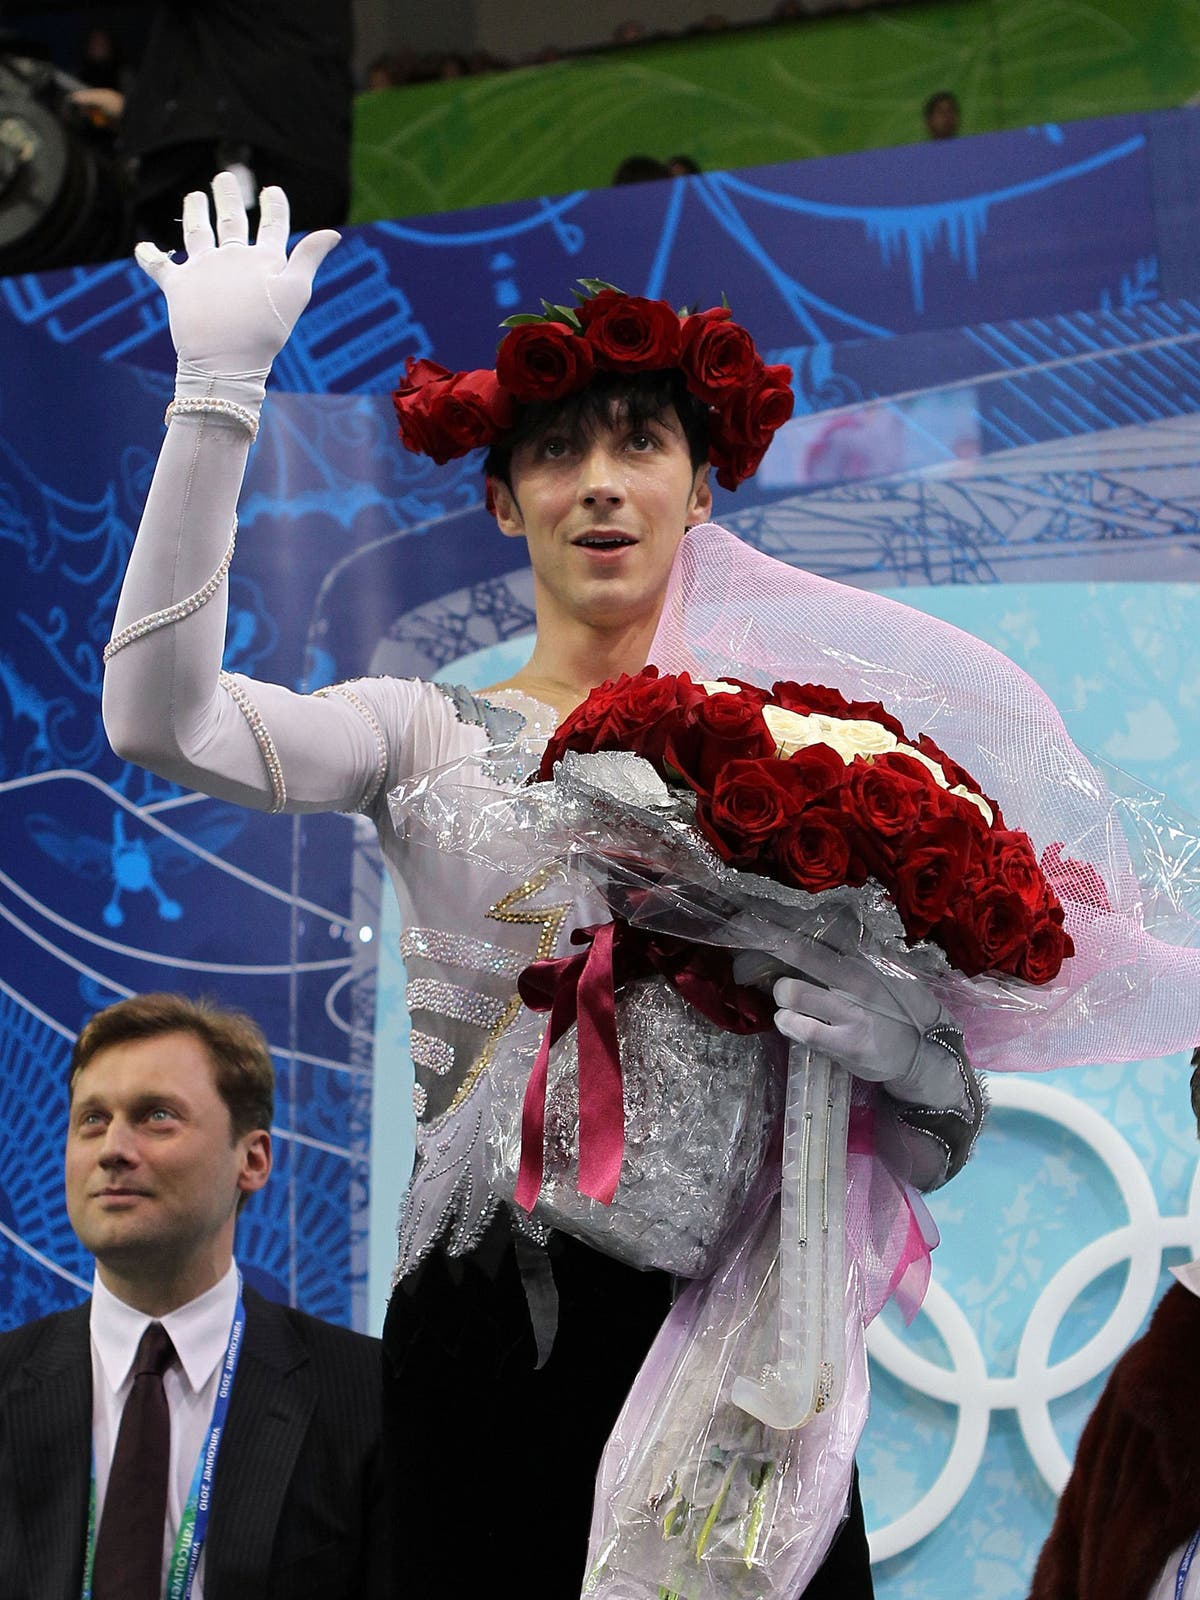 Johnny Weir shoots down Trump ally Jenna Ellis after she knocks his Olympic outfit with homophobic tweets